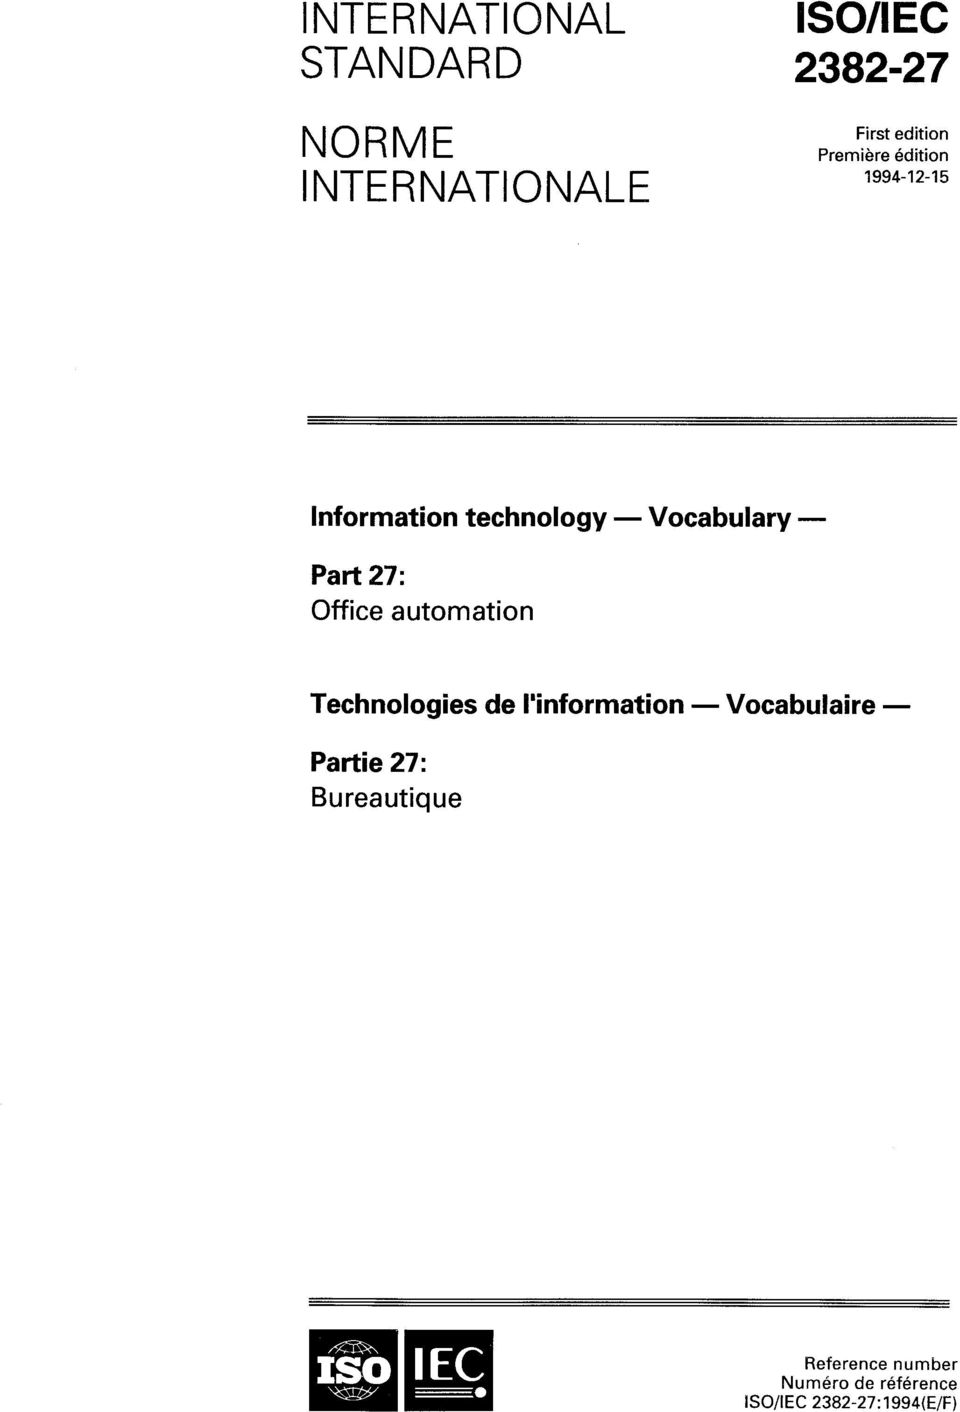 Office automation Technologies de Unformation - Vocabulaire - Partie 27: